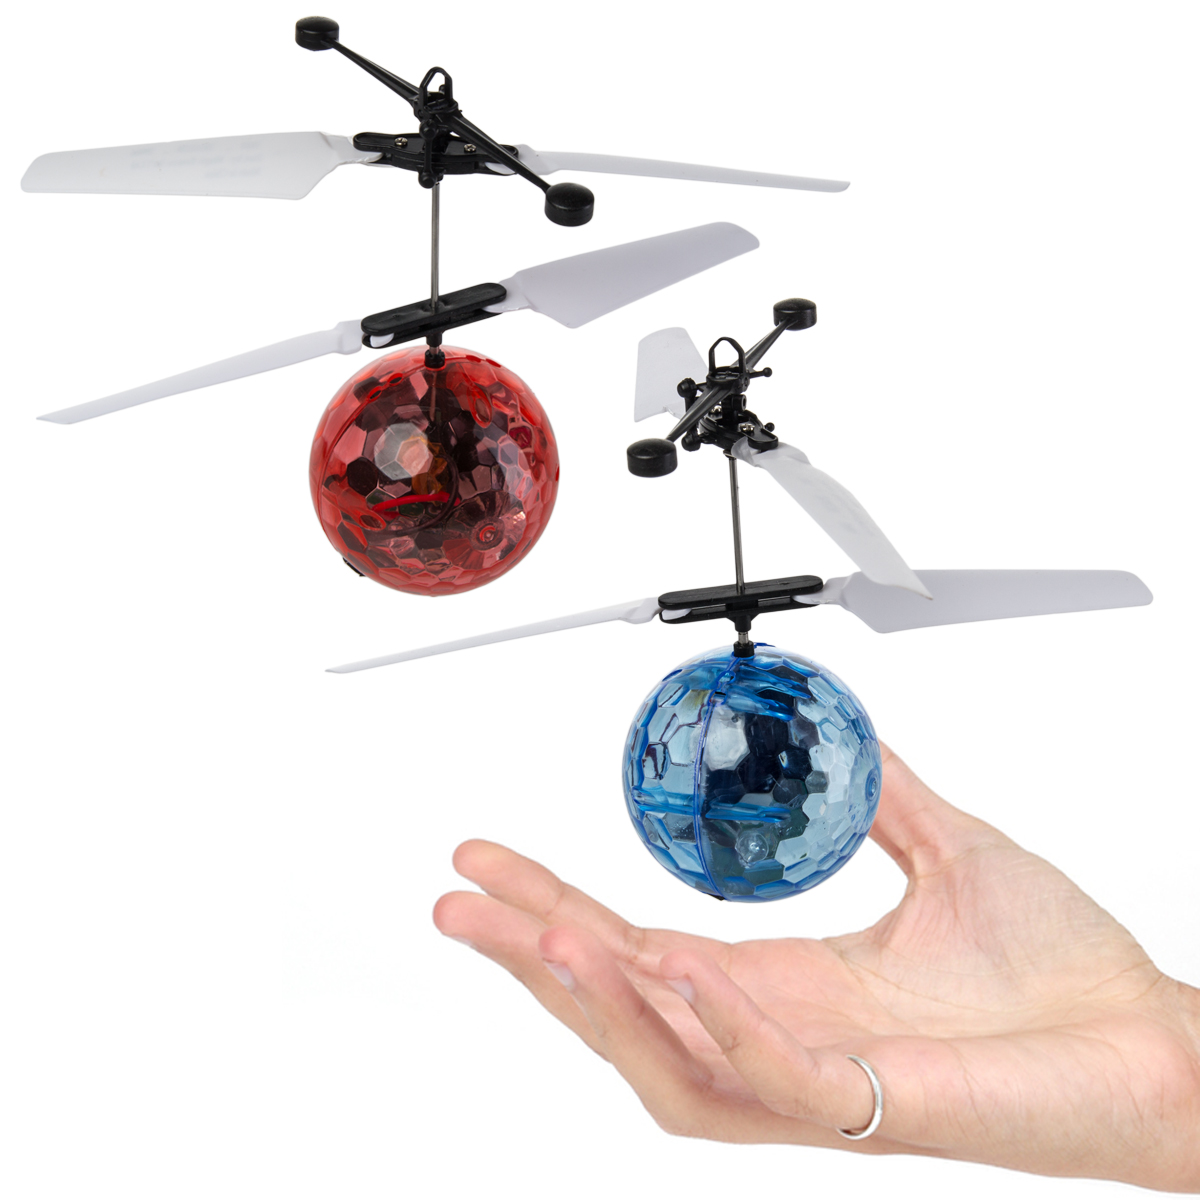 2pk Flying Ball Helicopter Toy LED Light Up RC Style Induction Drone Kids Adults